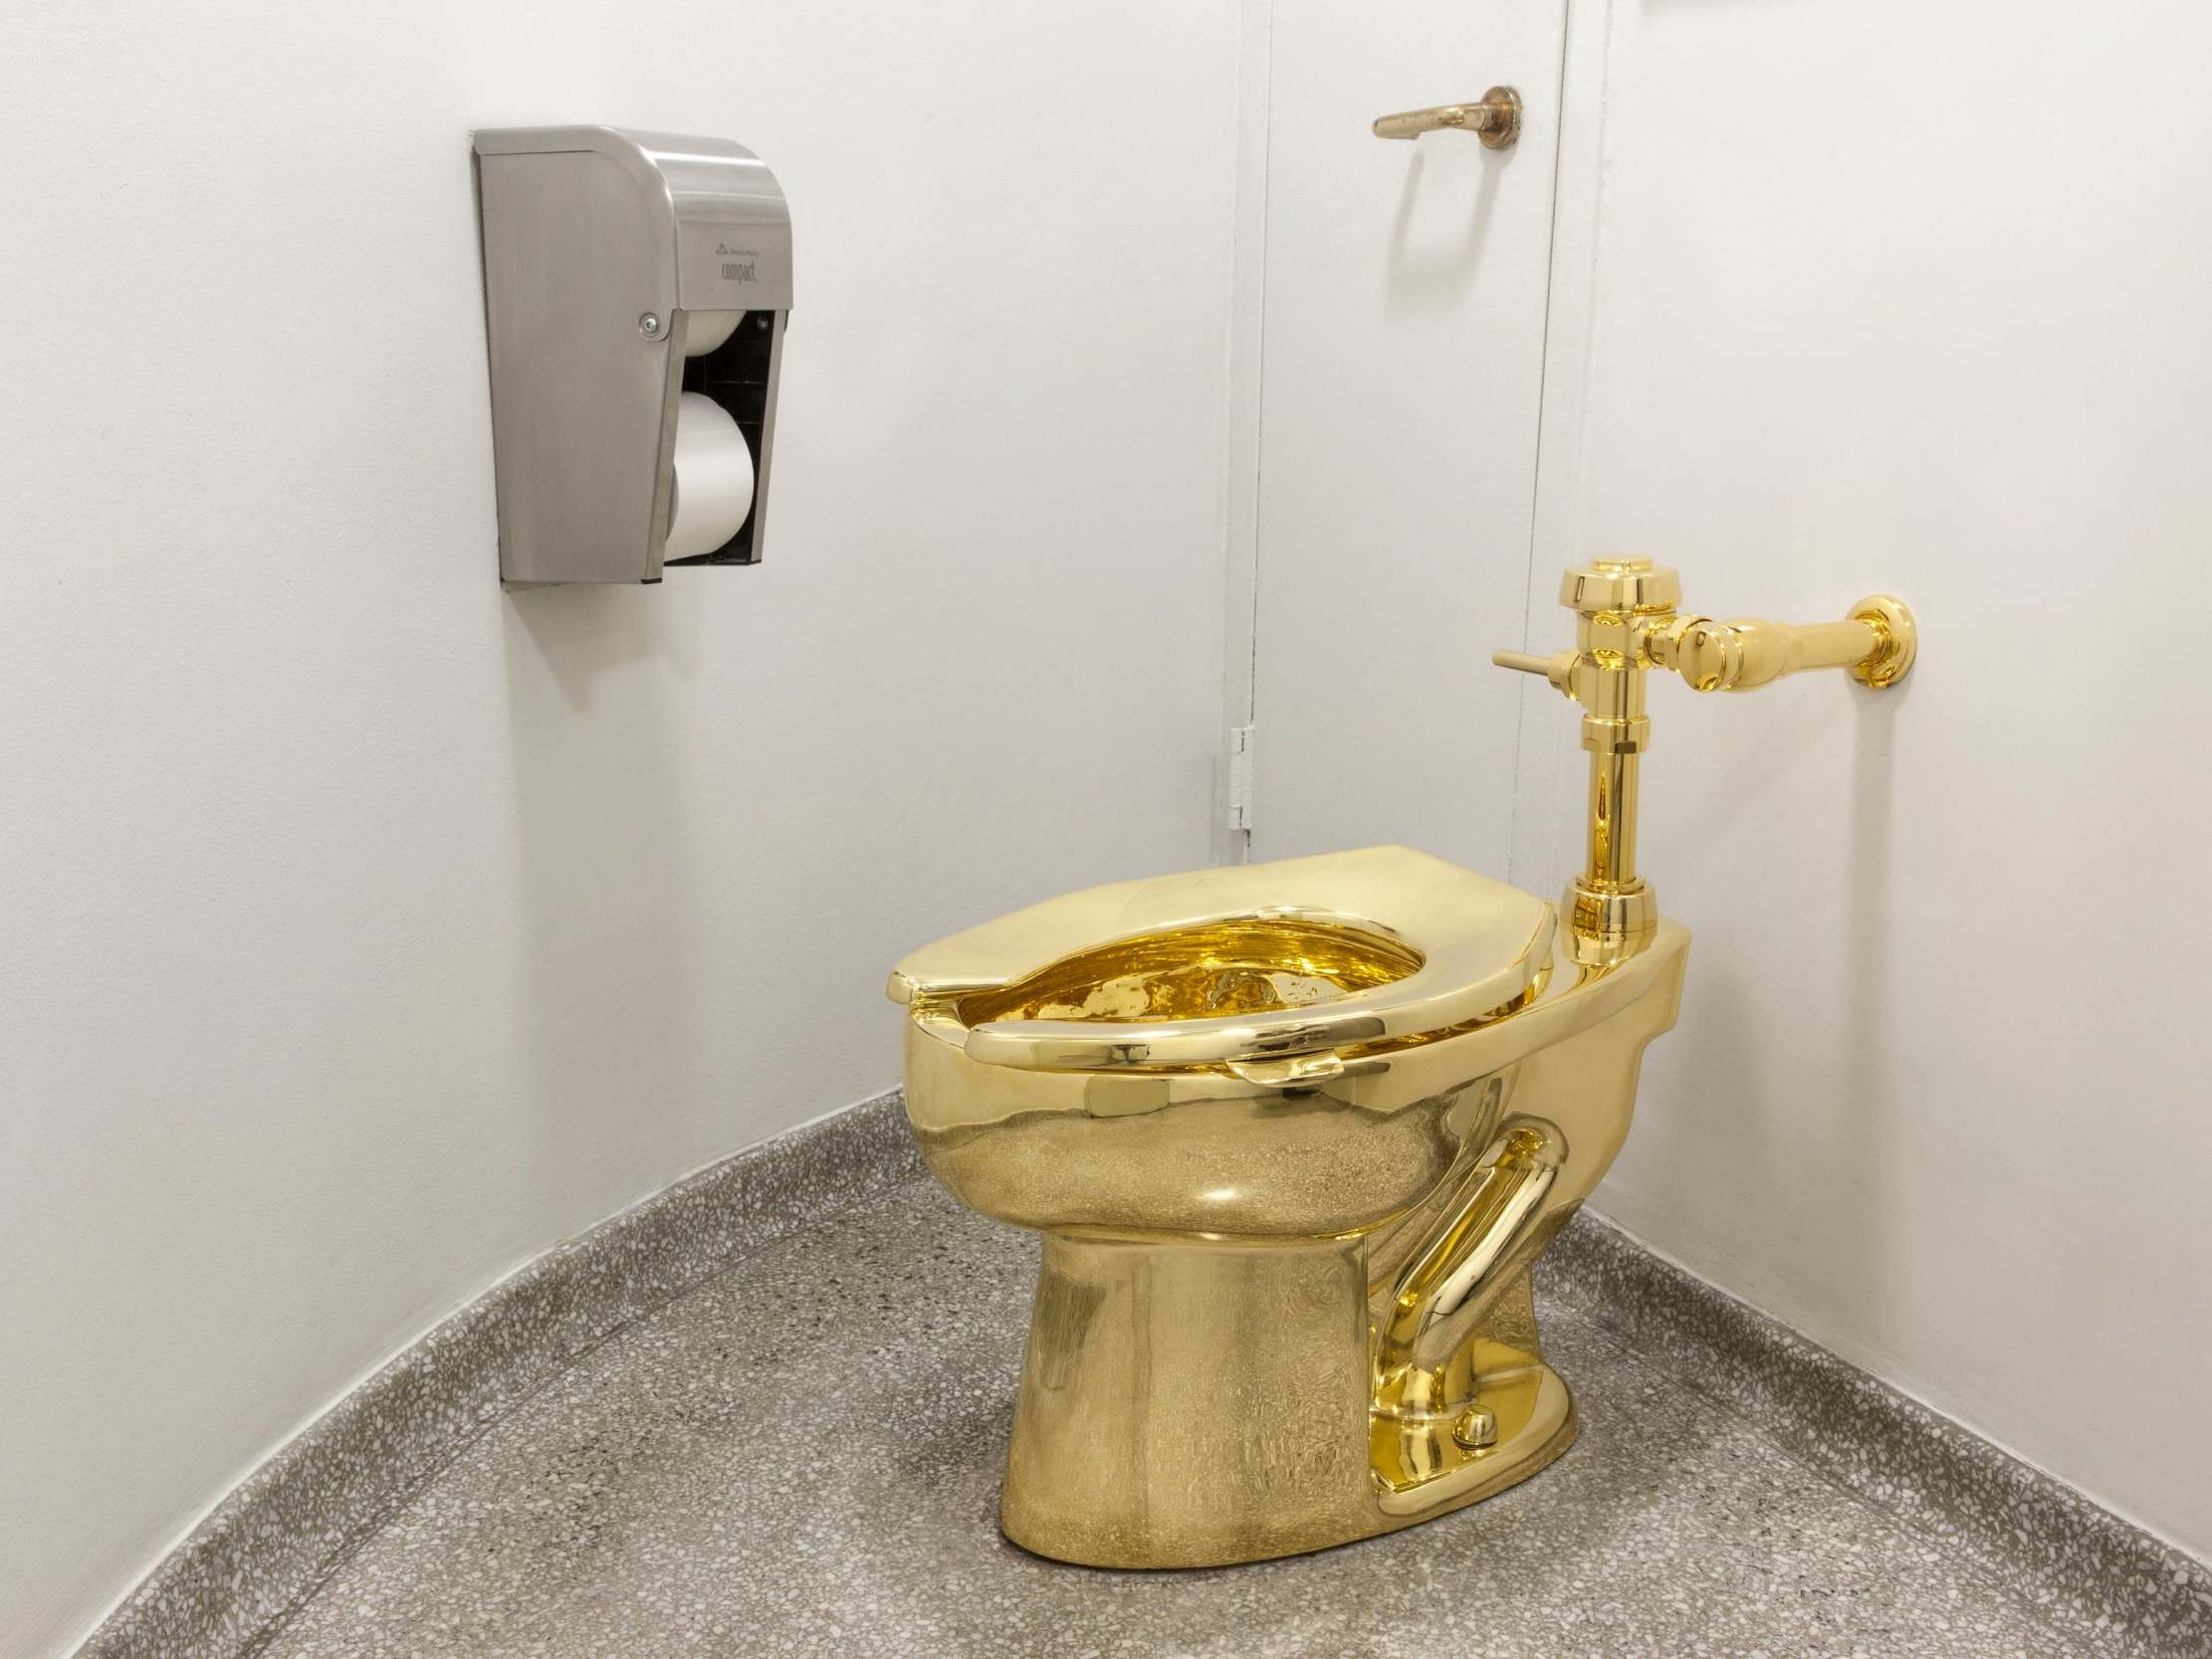 Three arrested over golden toilet theft from Blenheim Palace